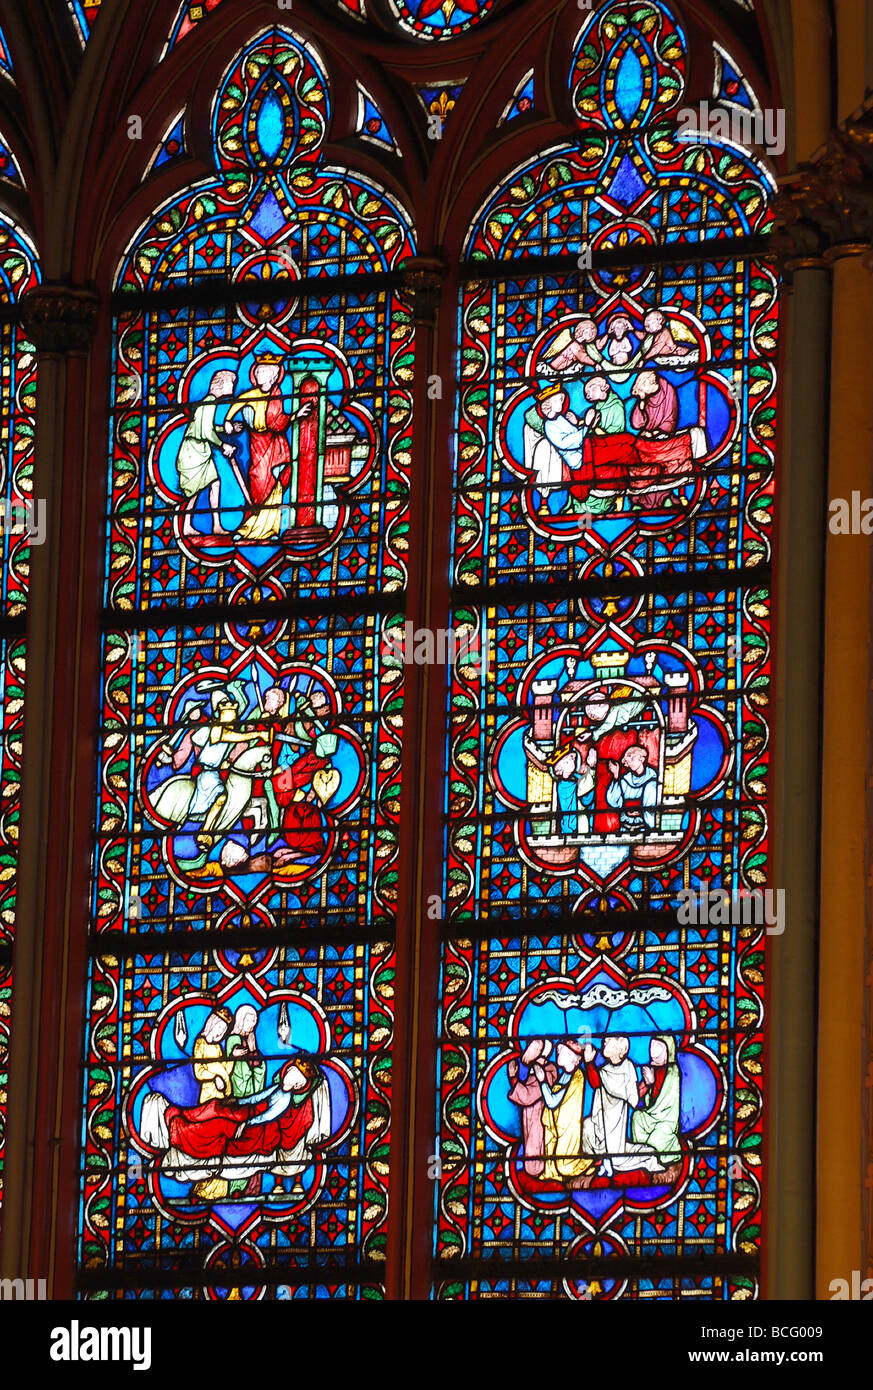 Window detail Notre Dame number 2717 - Stock Image